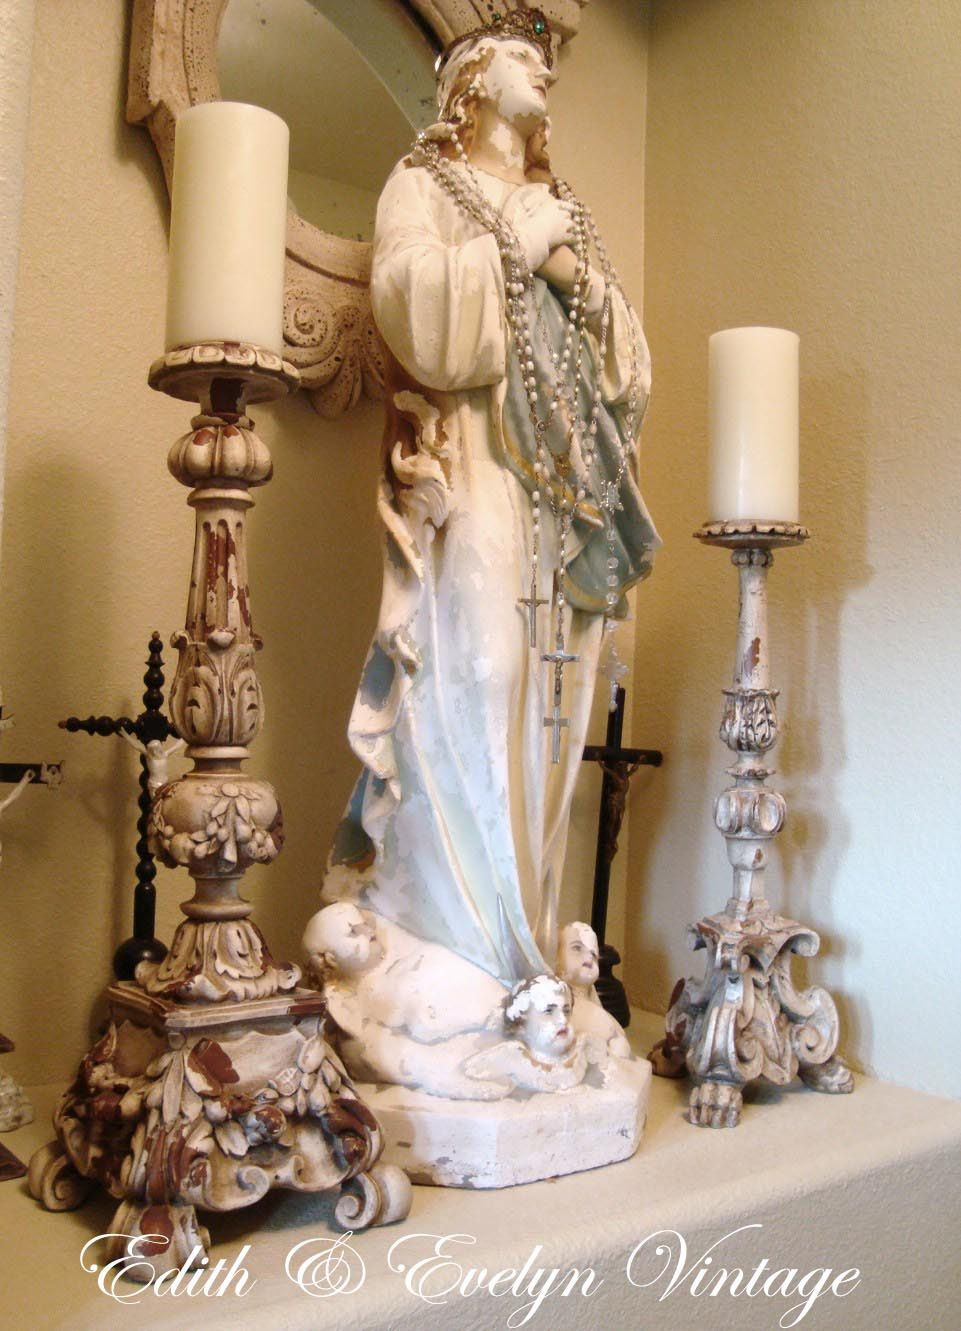 Home altar ideas on pinterest altars catholic and mother mary - Home altar designs ...